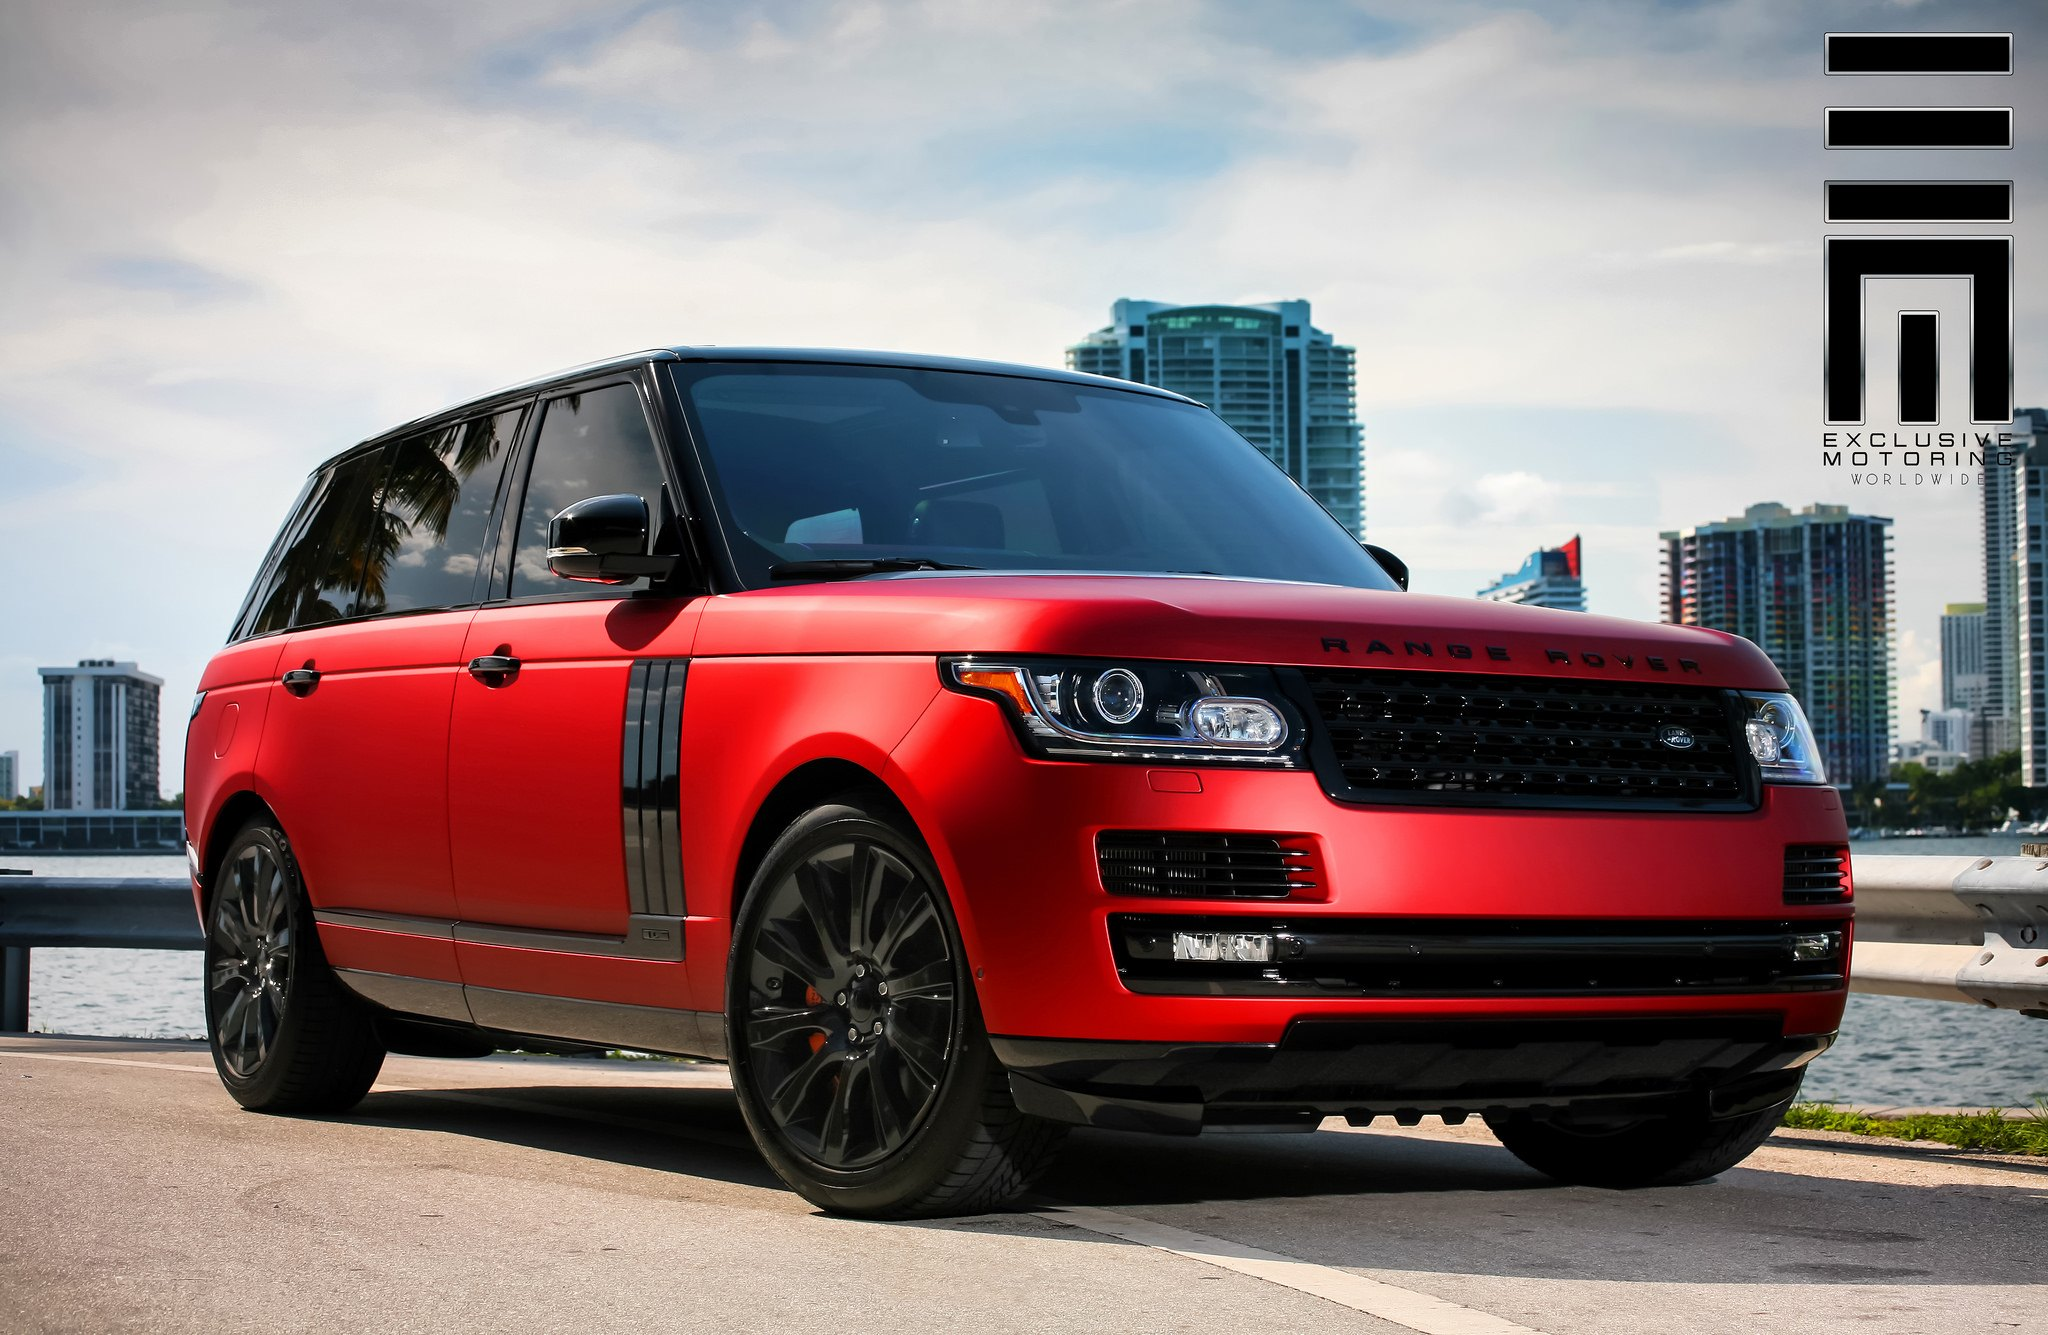 Matte Black Range Rover With Red Interior | www.indiepedia.org